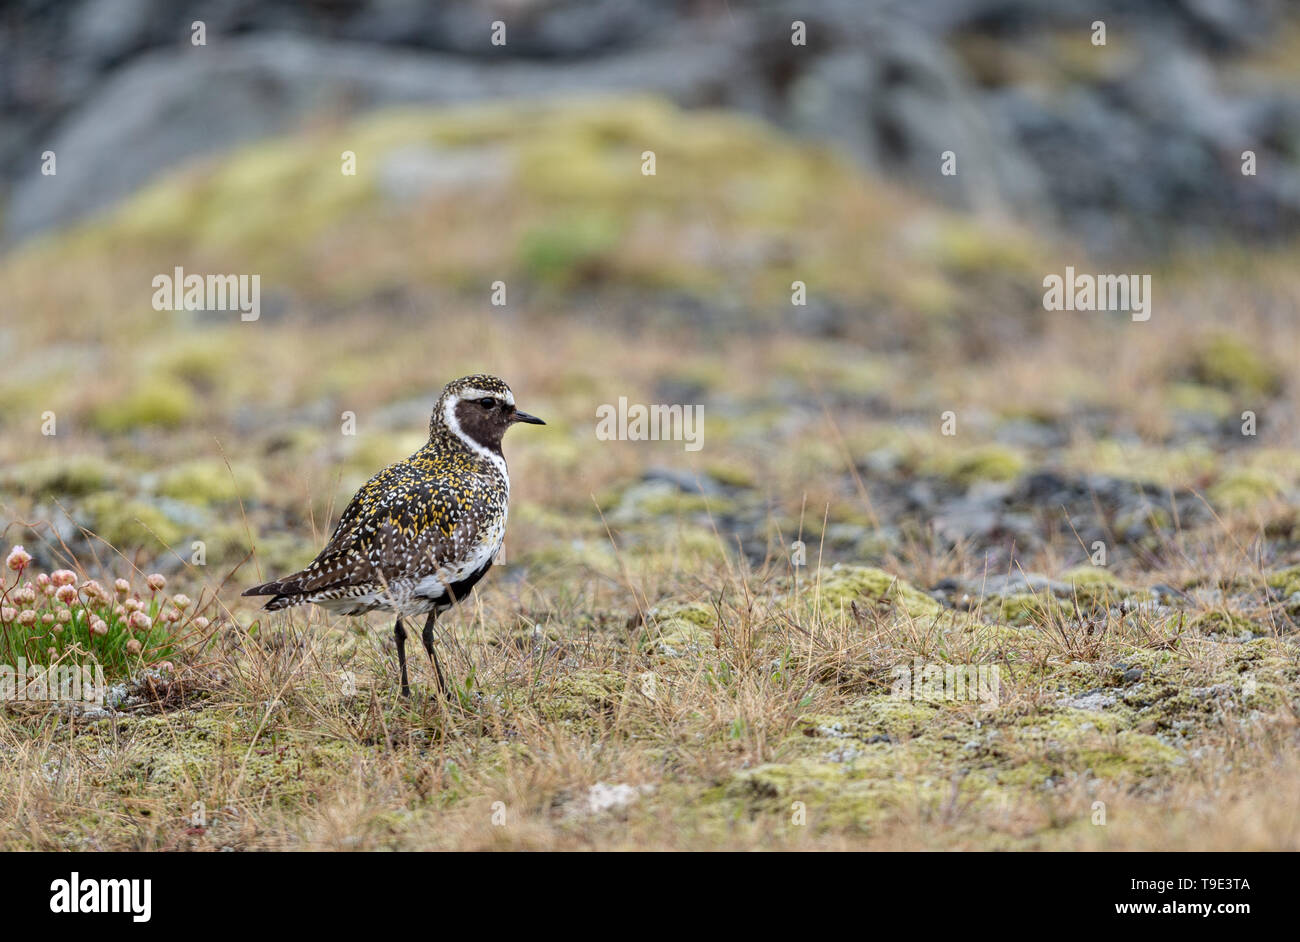 The European golden plover (Pluvialis apricaria), also known as the Eurasian golden plover or just the golden plover within Europe, is a largish plove - Stock Image